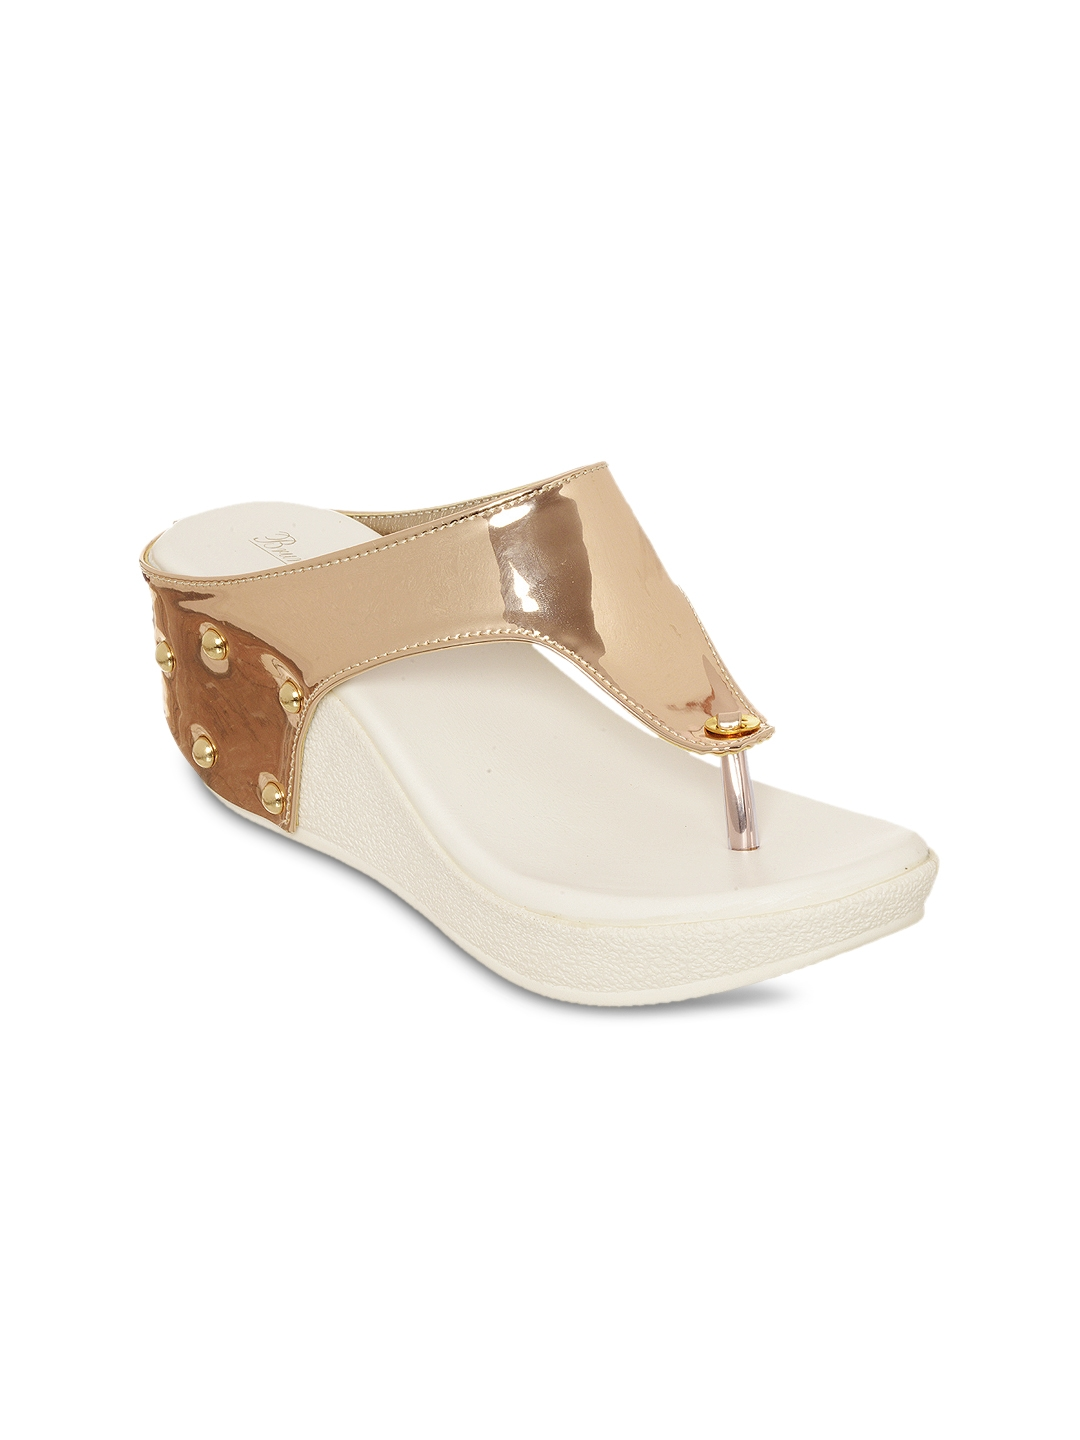 Bruno Manetti Women Gold Toned Solid Wedges